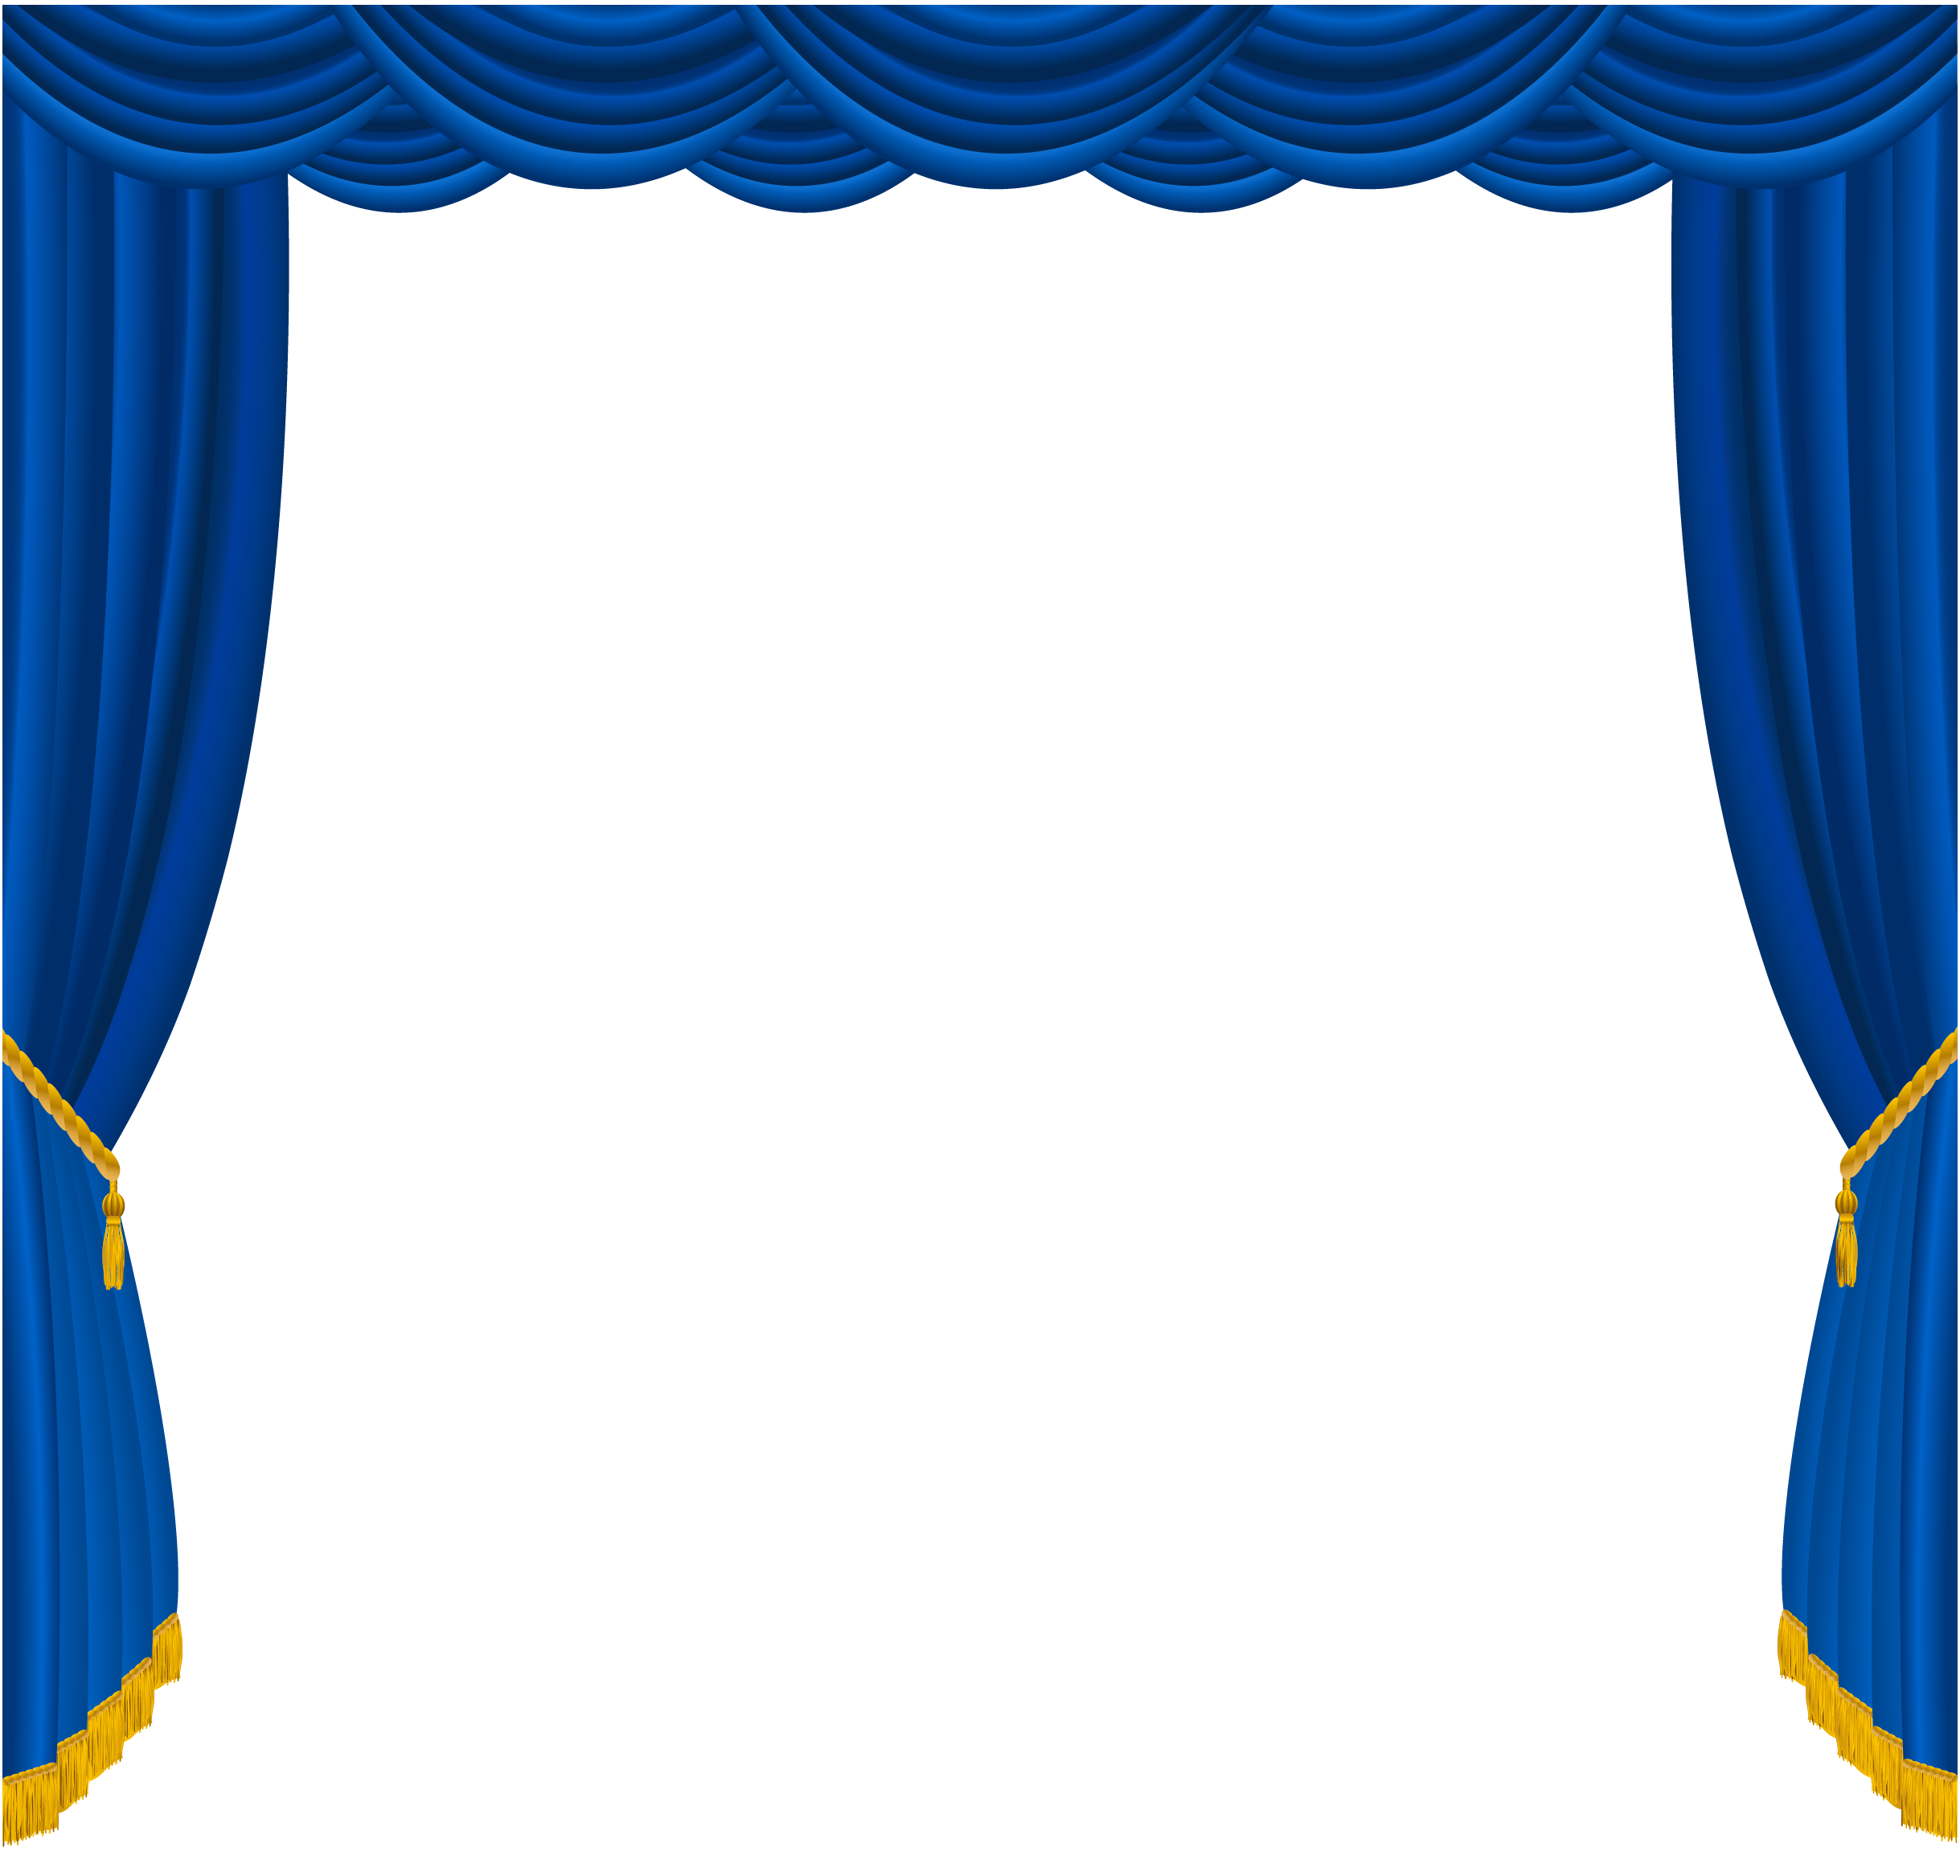 Curtain clipart blue curtain. Transparent curtains decor png